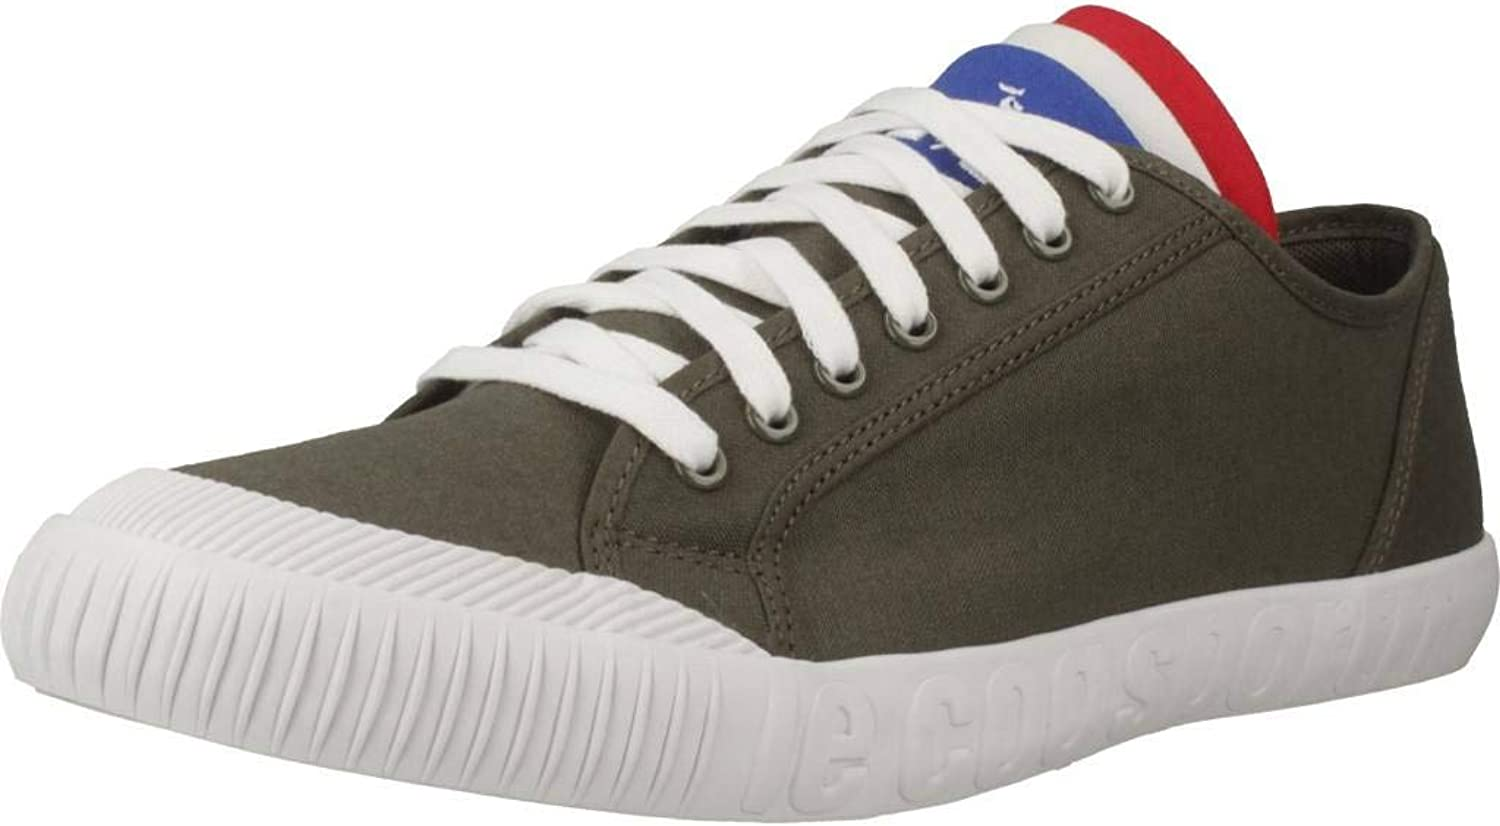 Le Coq Sportif Nationale Sport Sneakers Canvas Low Sneakers